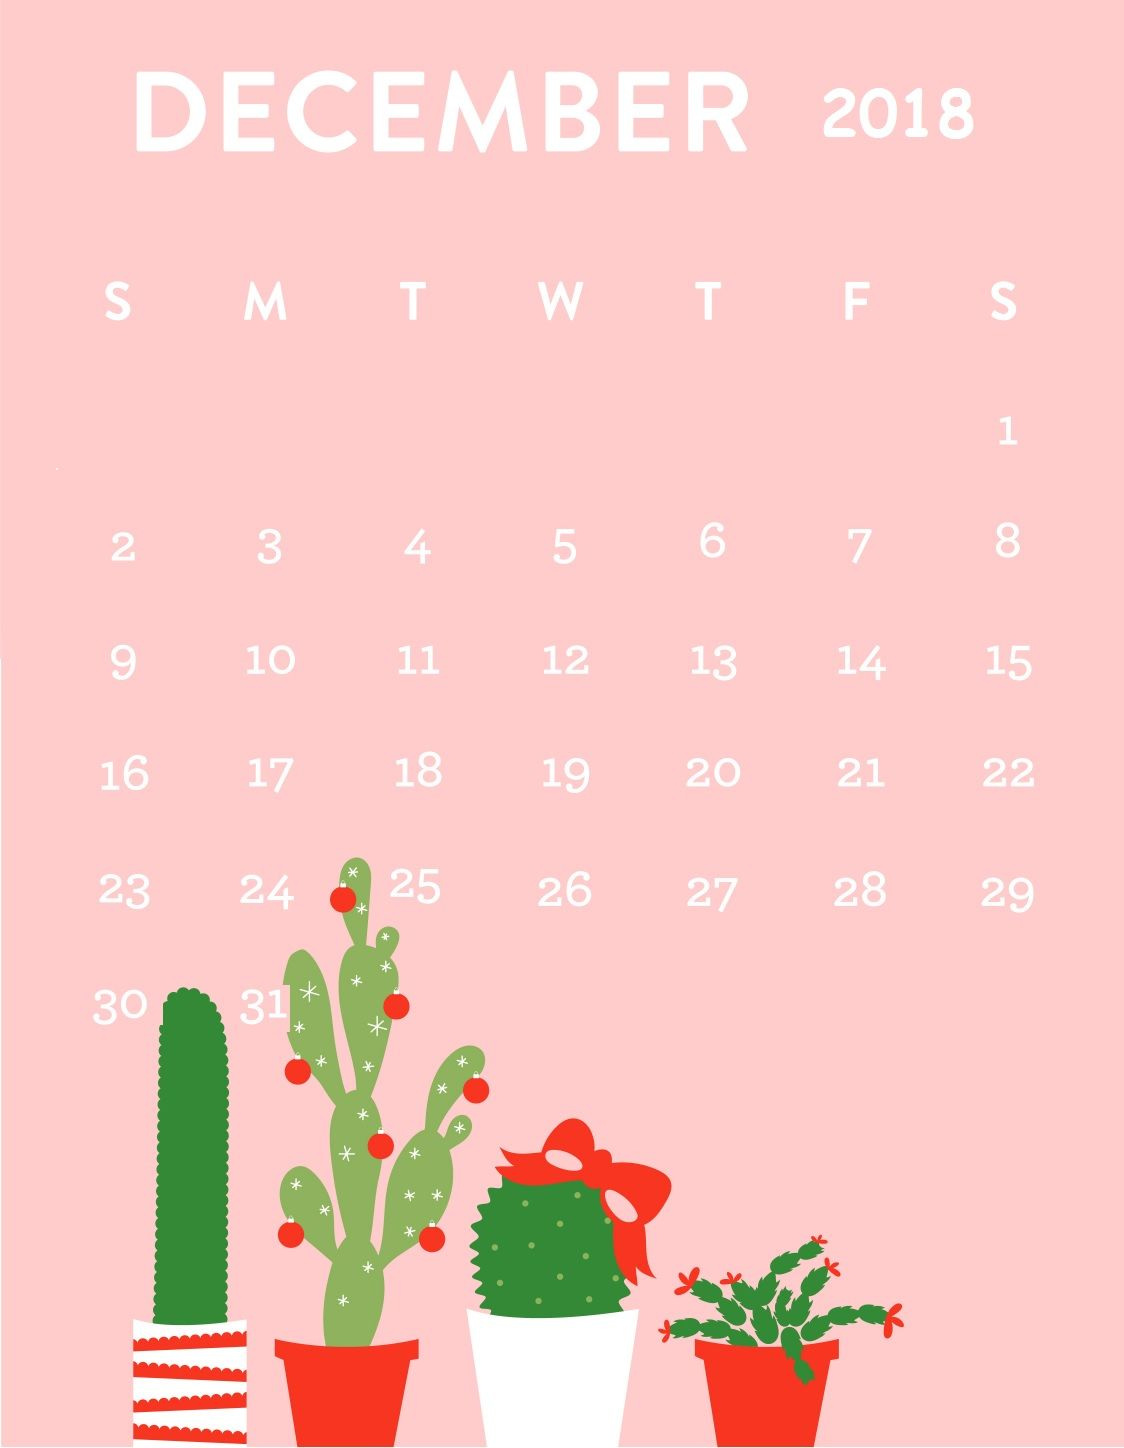 December 2018 Calendar Iphone Wallpaper Hold The Phone